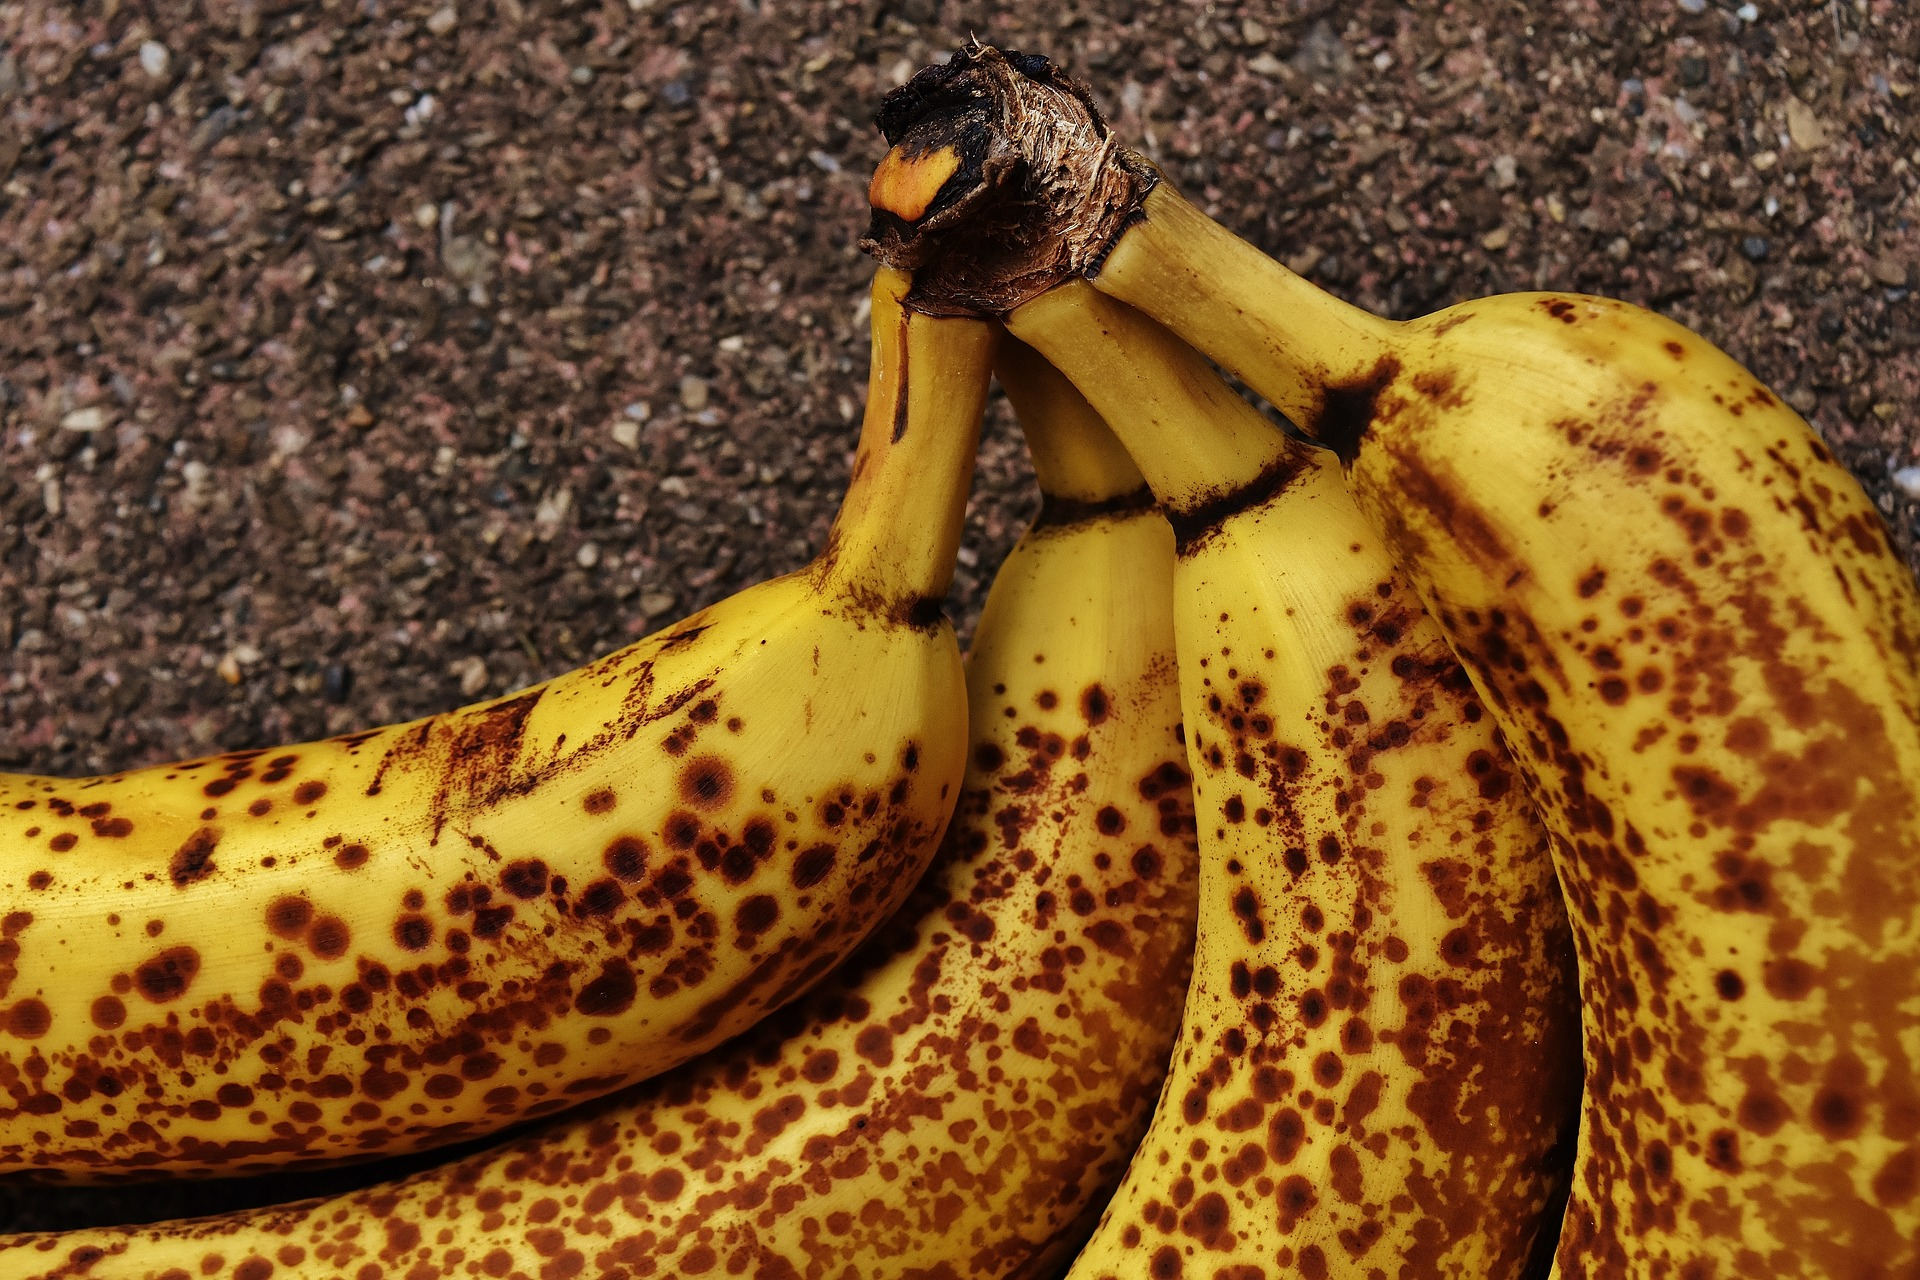 A bunch of brown bananas